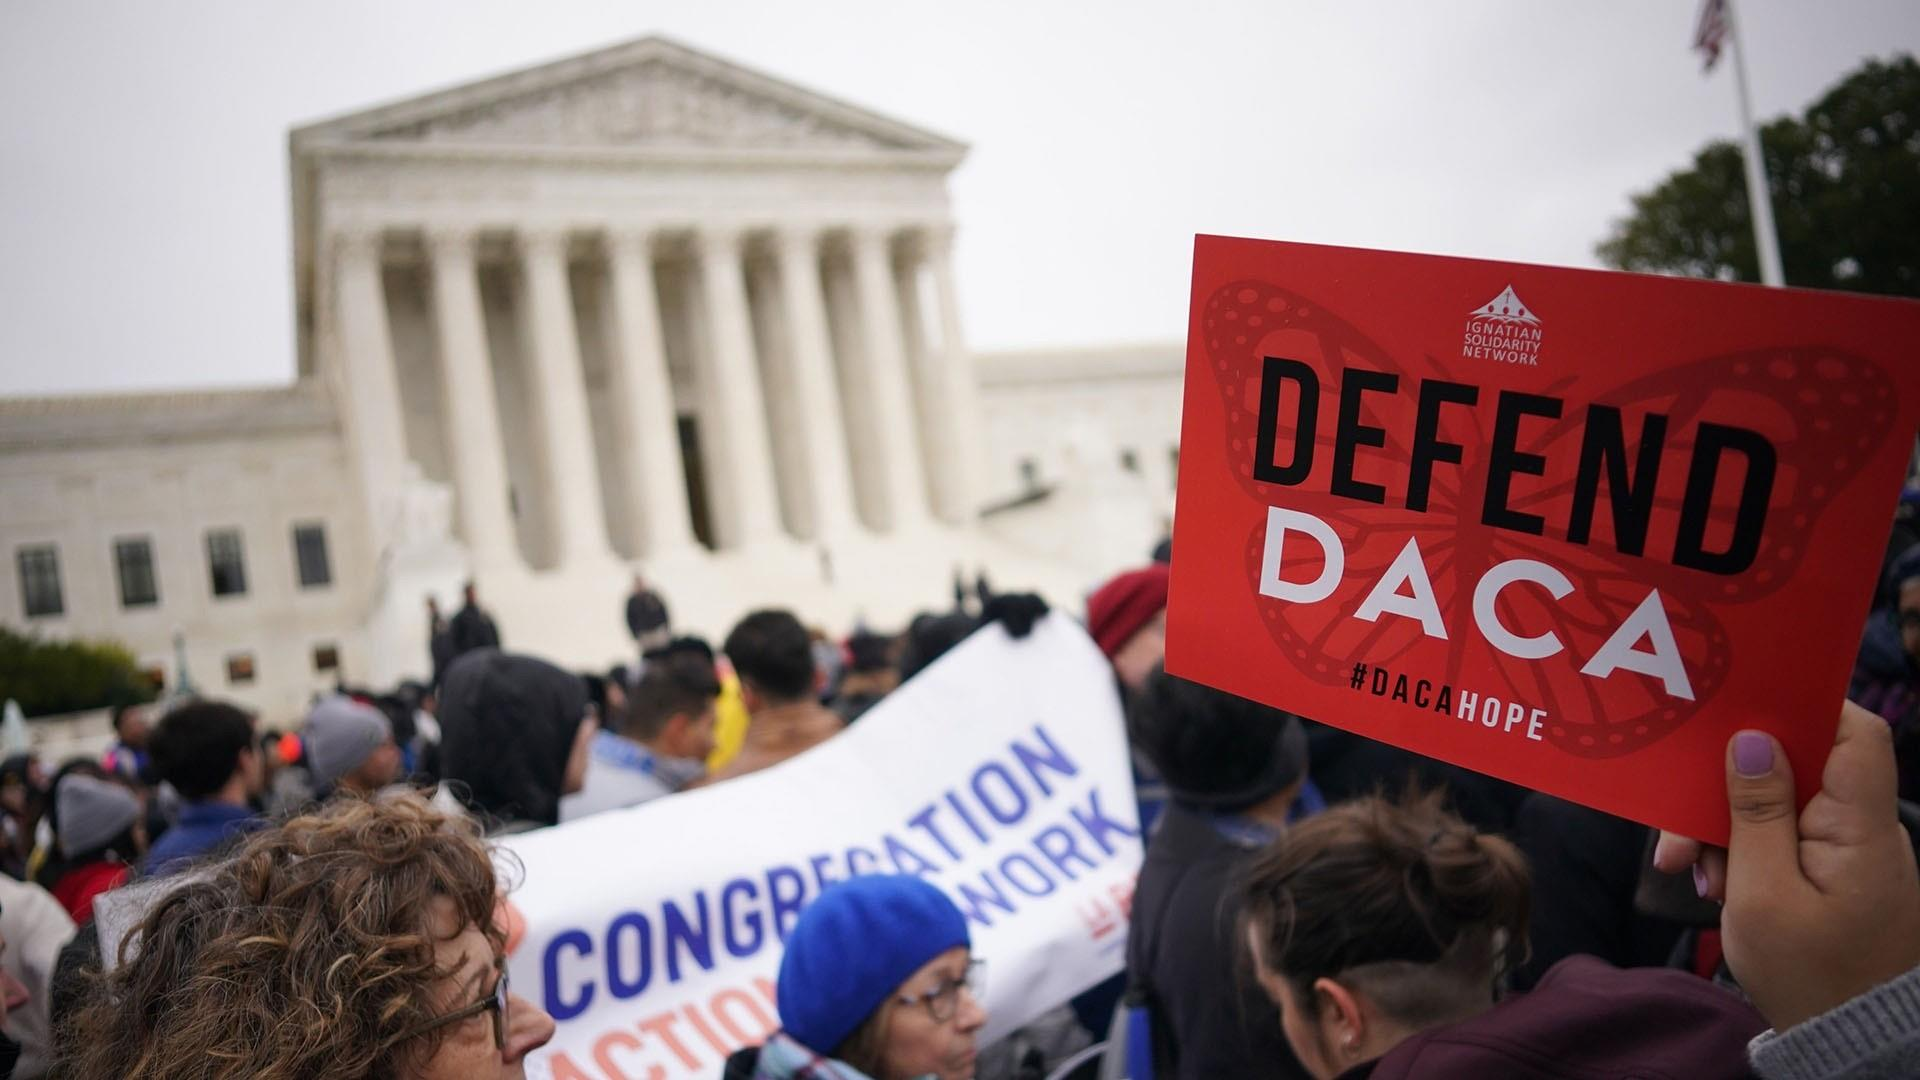 Protesters gather as Supreme Court hears arguments in DACA case